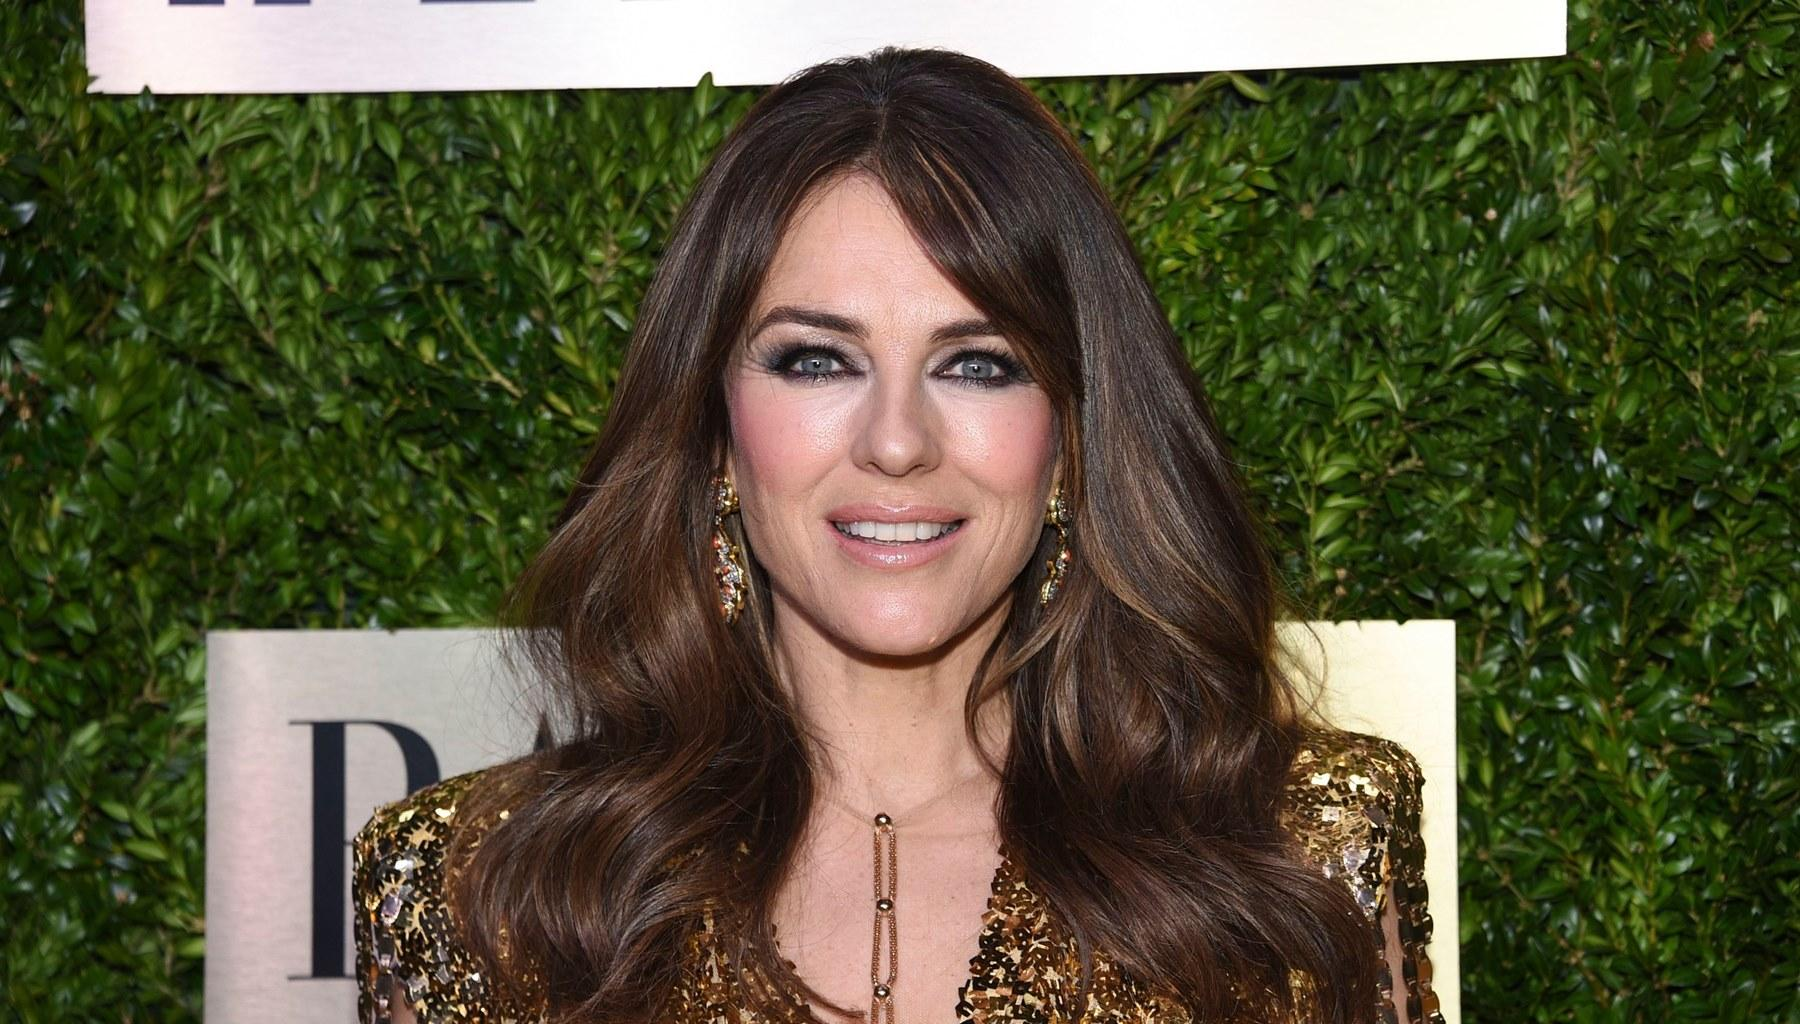 Elizabeth Hurley Is Age-Defying In A Skimpy Bathing Suit While Riding A Bike In New Video